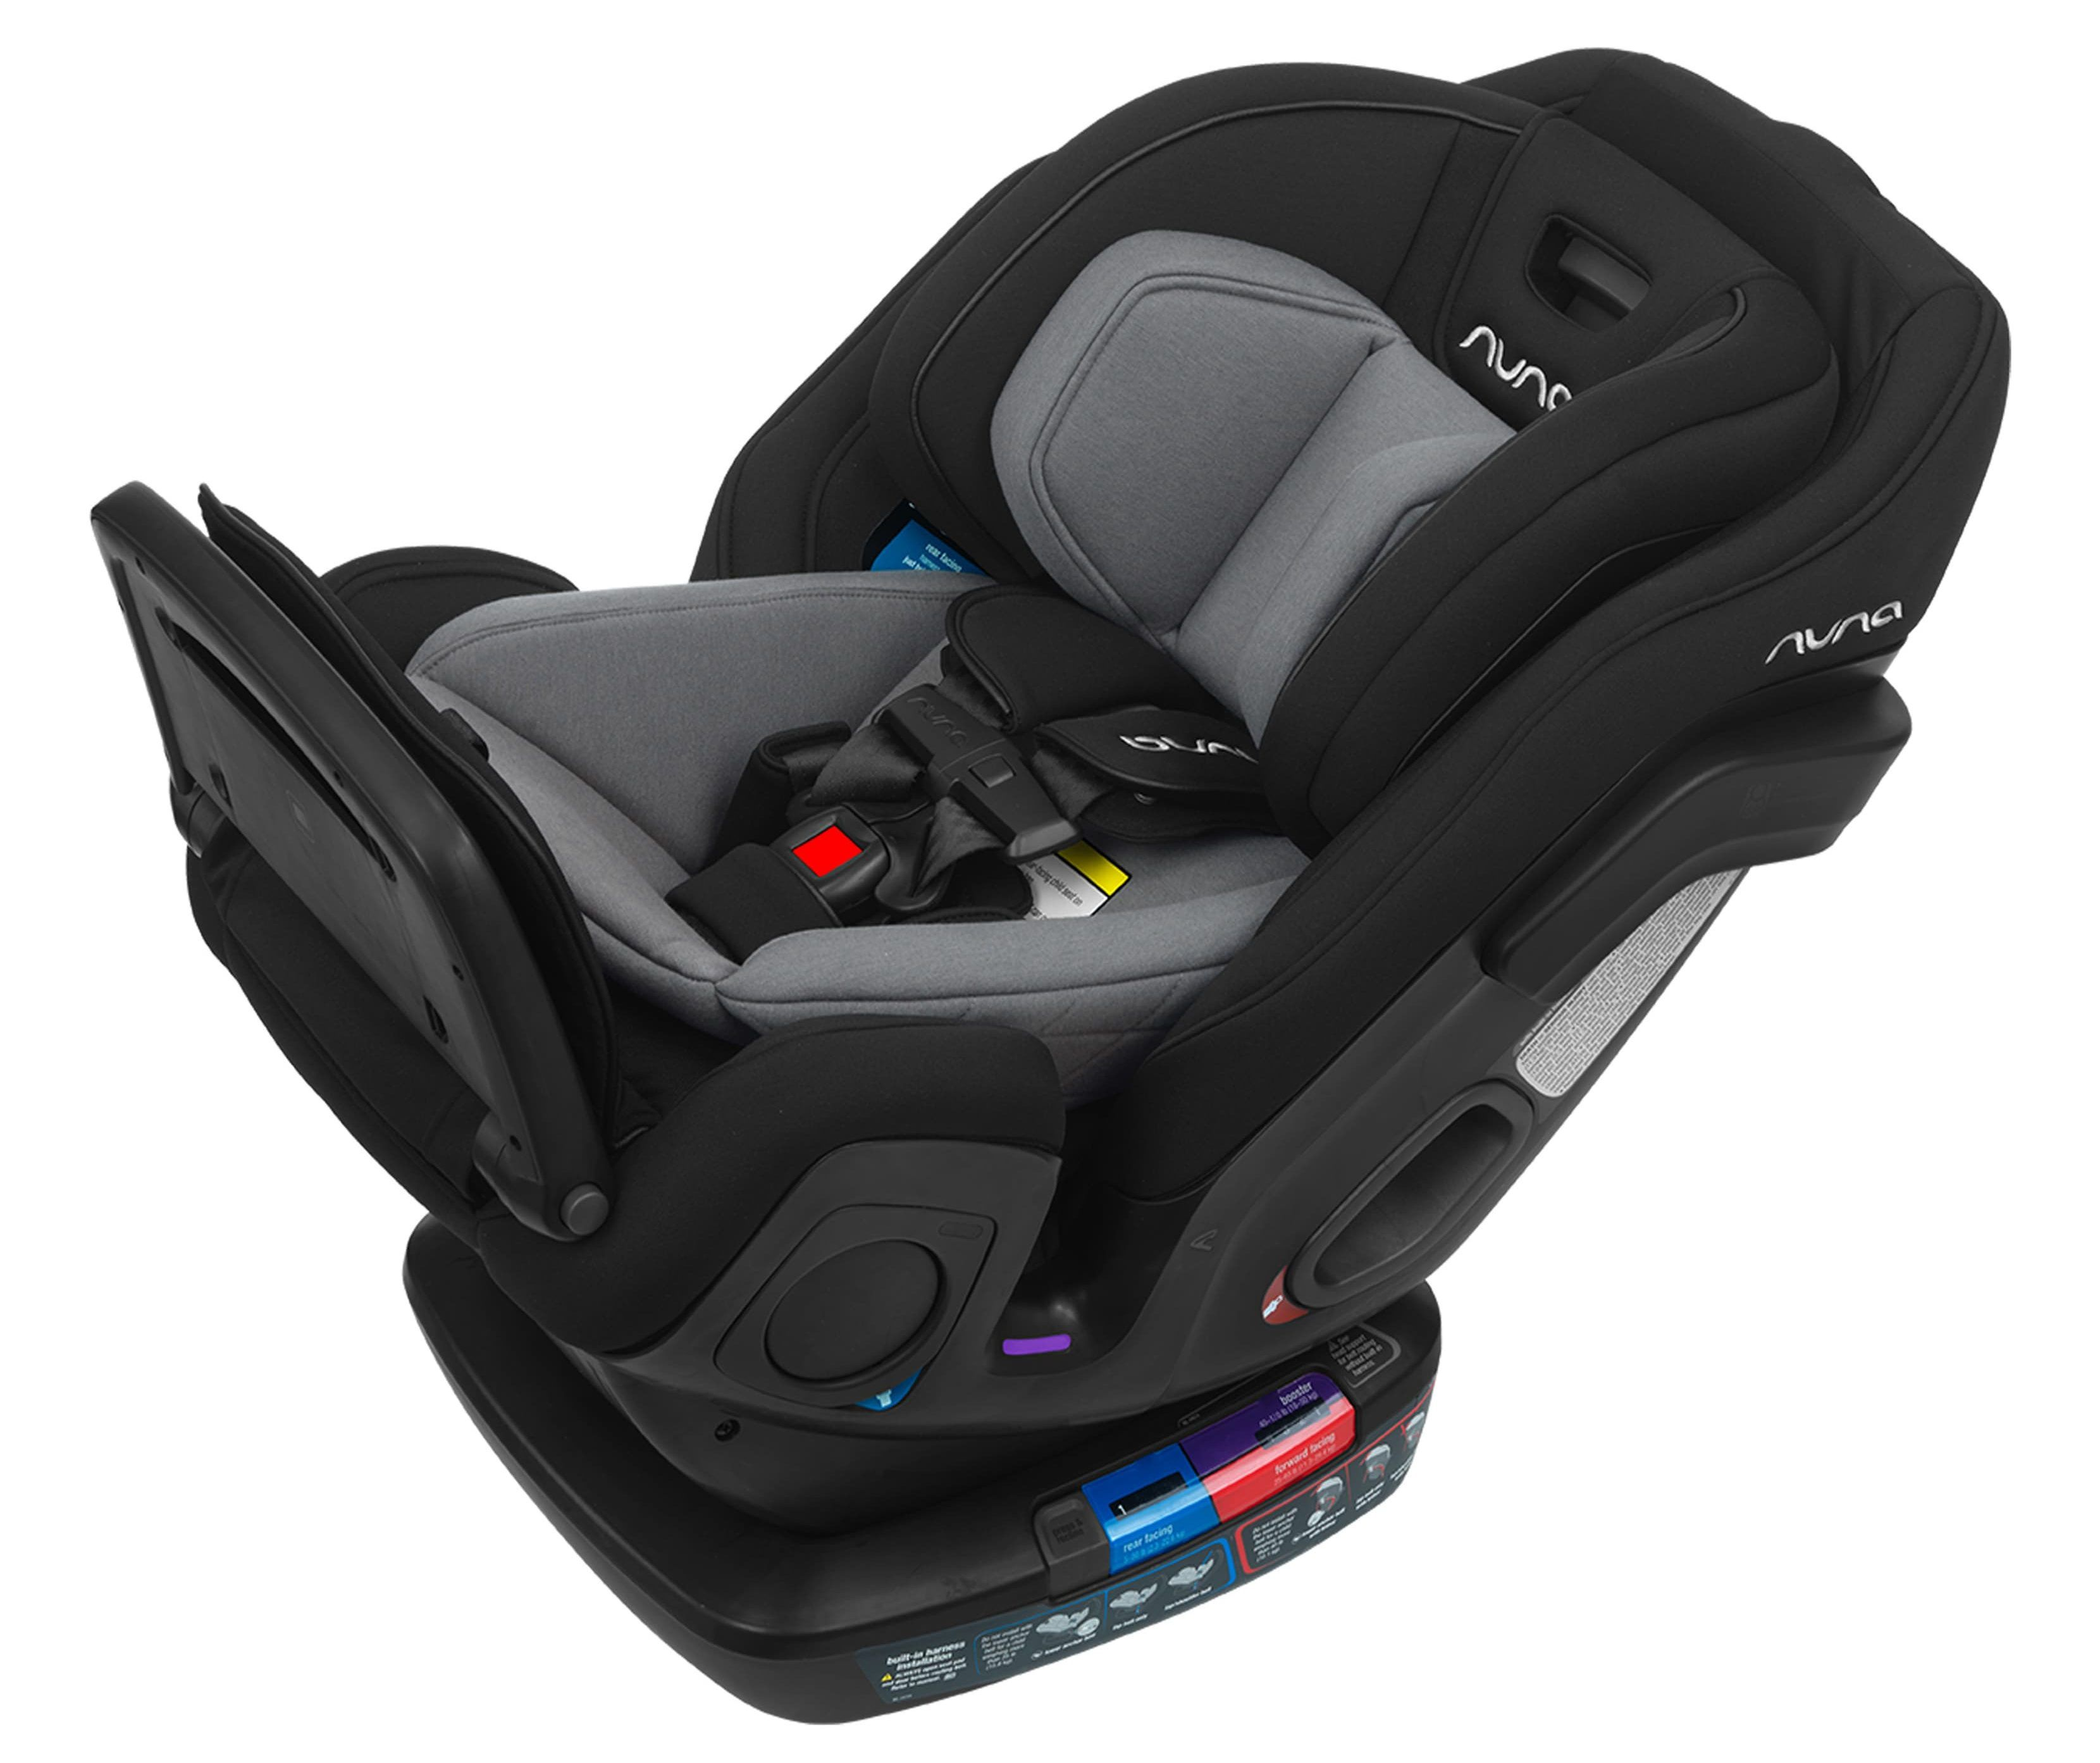 A car seat that can work from infancy to elementary car